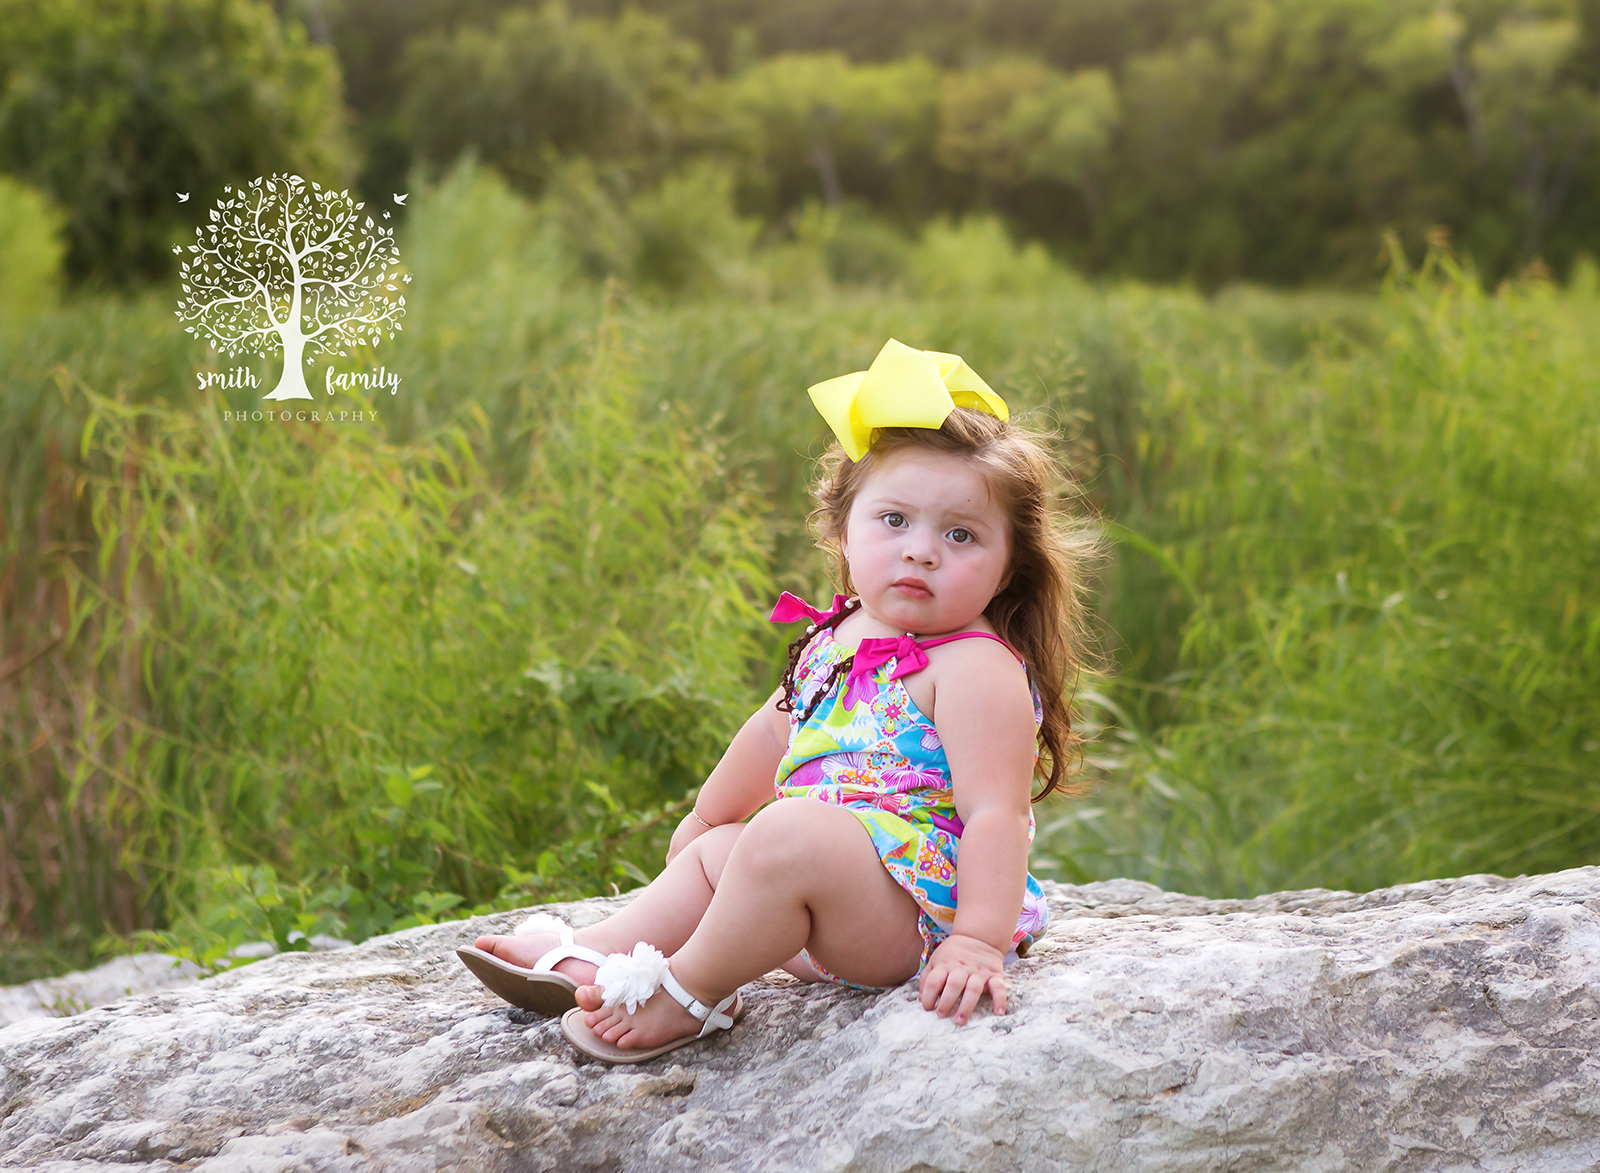 """Highly recommend!! Anna was very good at communicating with with me and helping me decide on a beautiful location. My daughters picture came out prefect and beautiful."" - Ilse B."